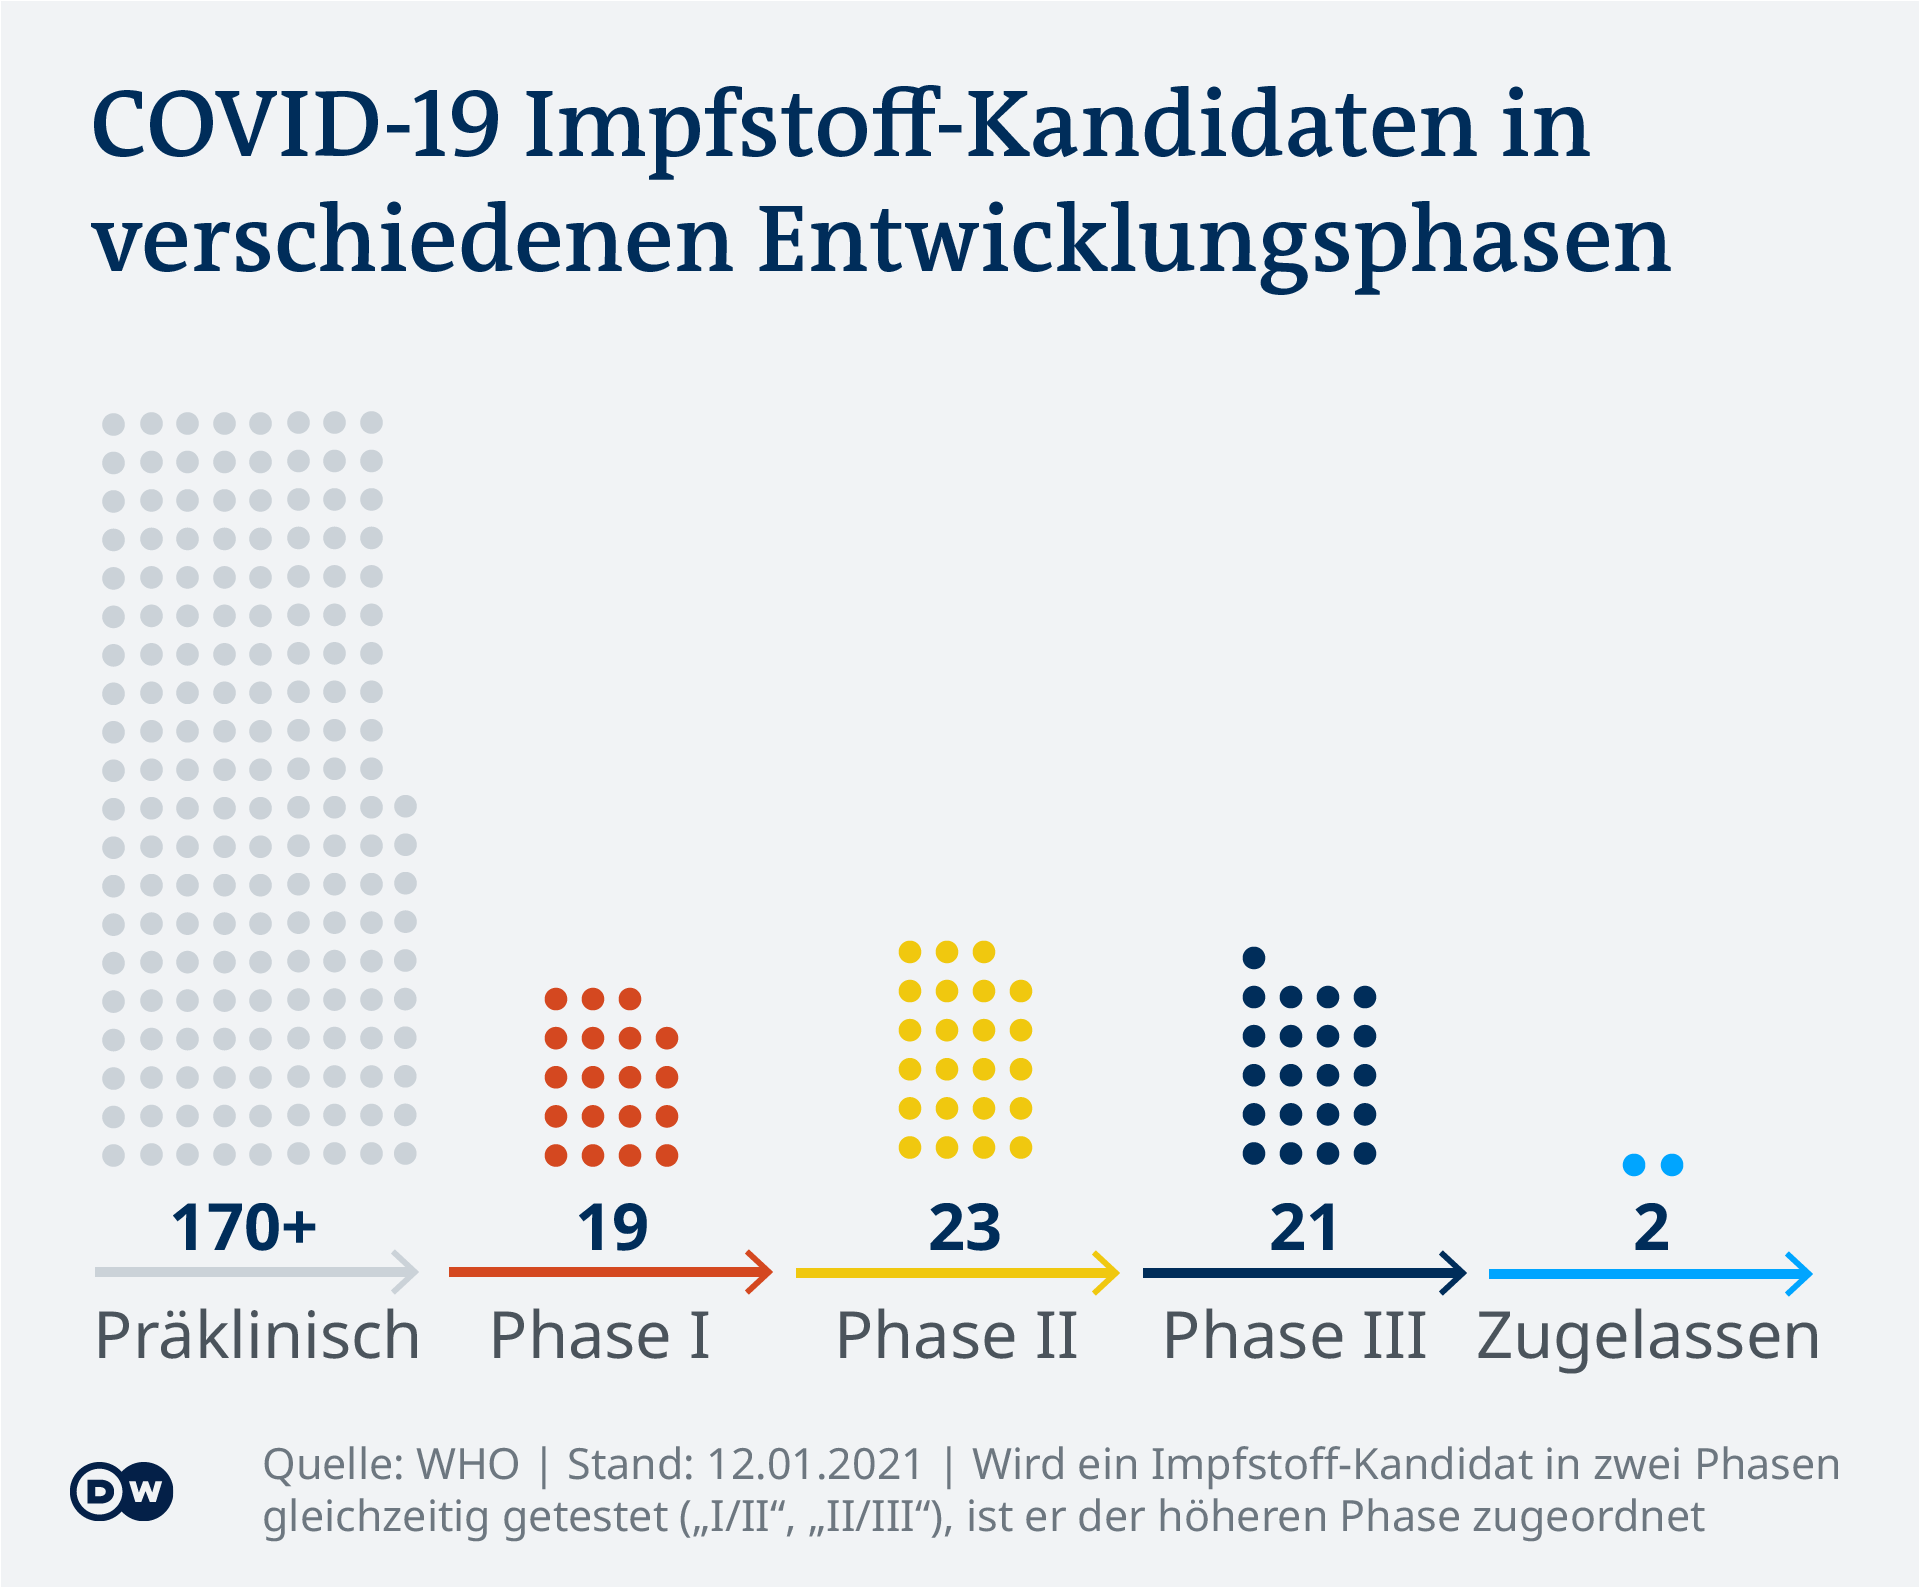 Data visualization - COVID-19 vaccine tracker - Phases - Update Jan 14, 2021 - German